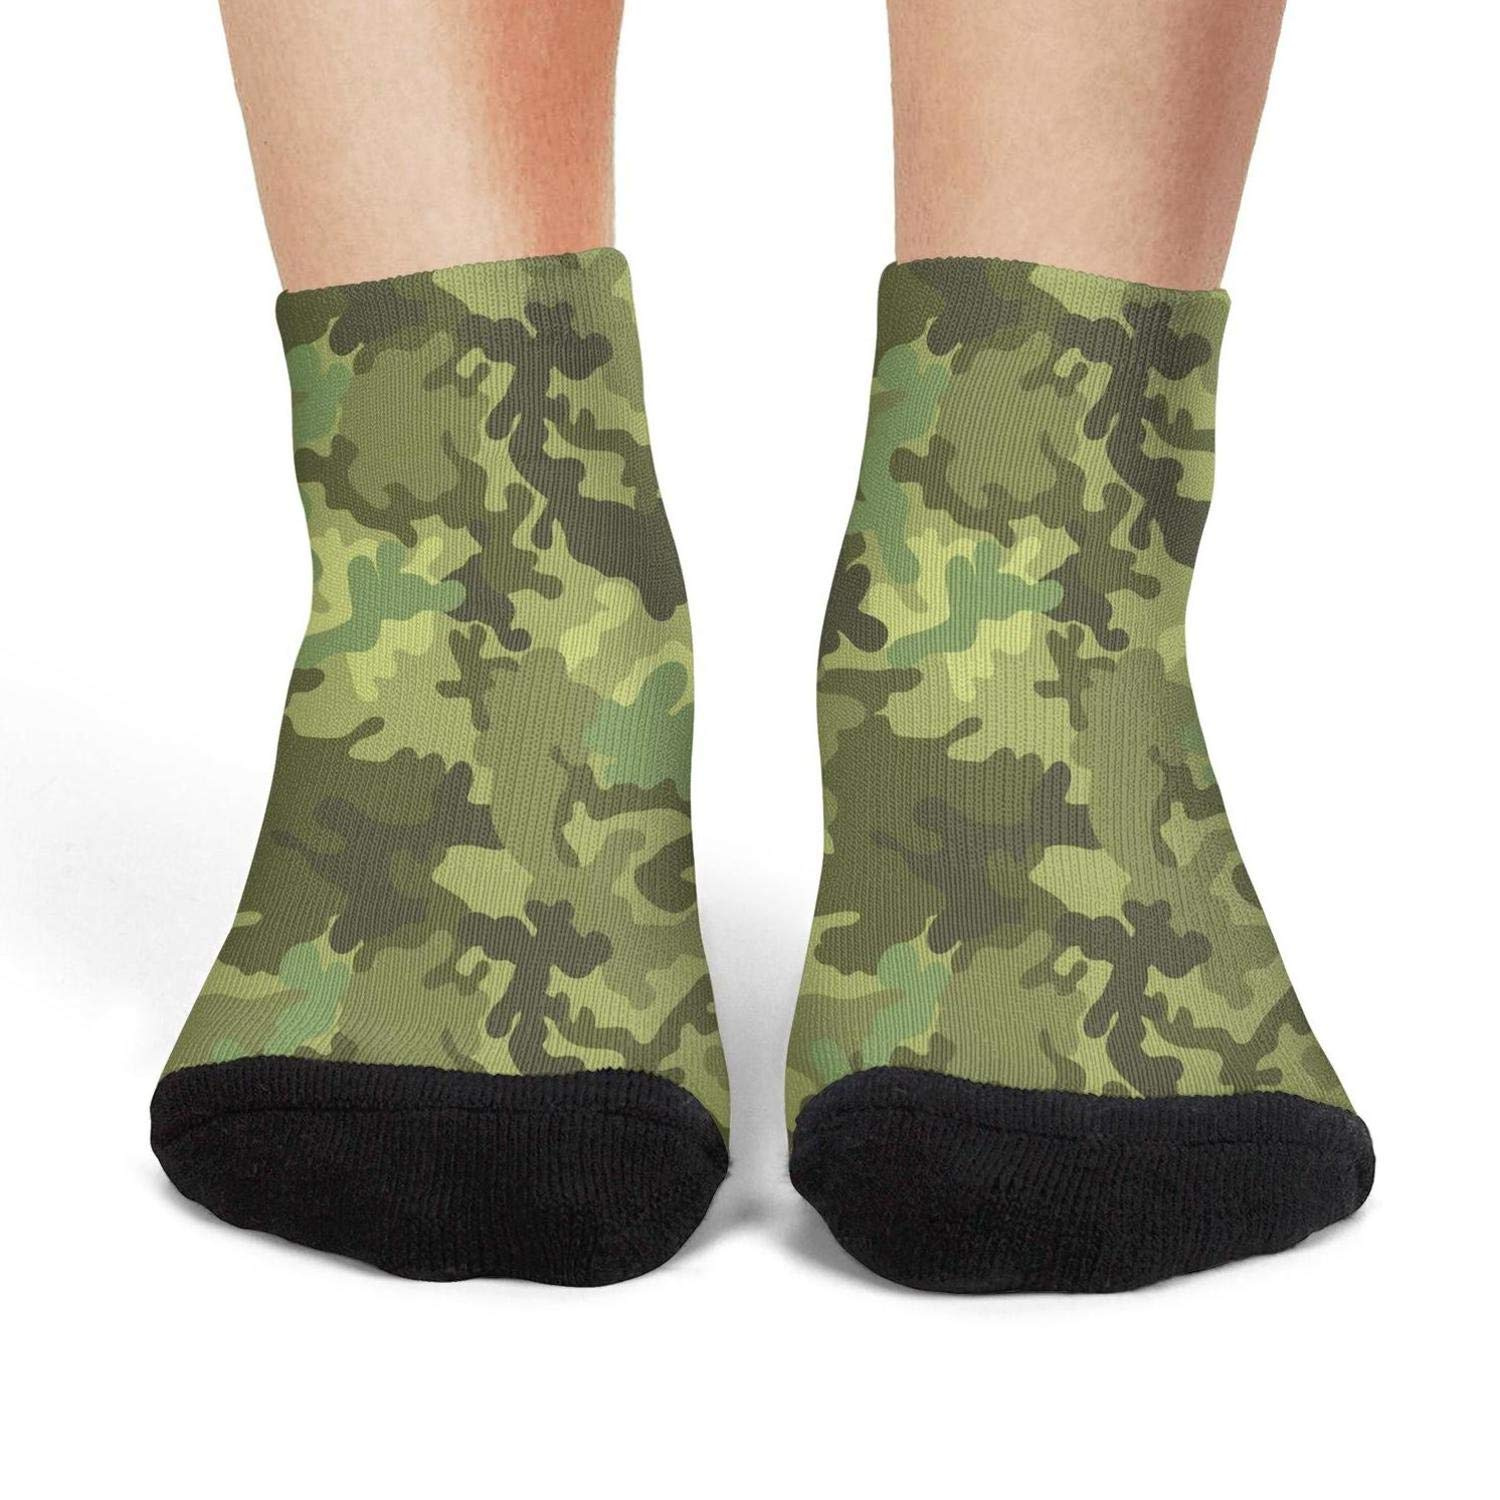 Mens low cut athletic Ankle sock green camo army print Non-Slip Short Sock